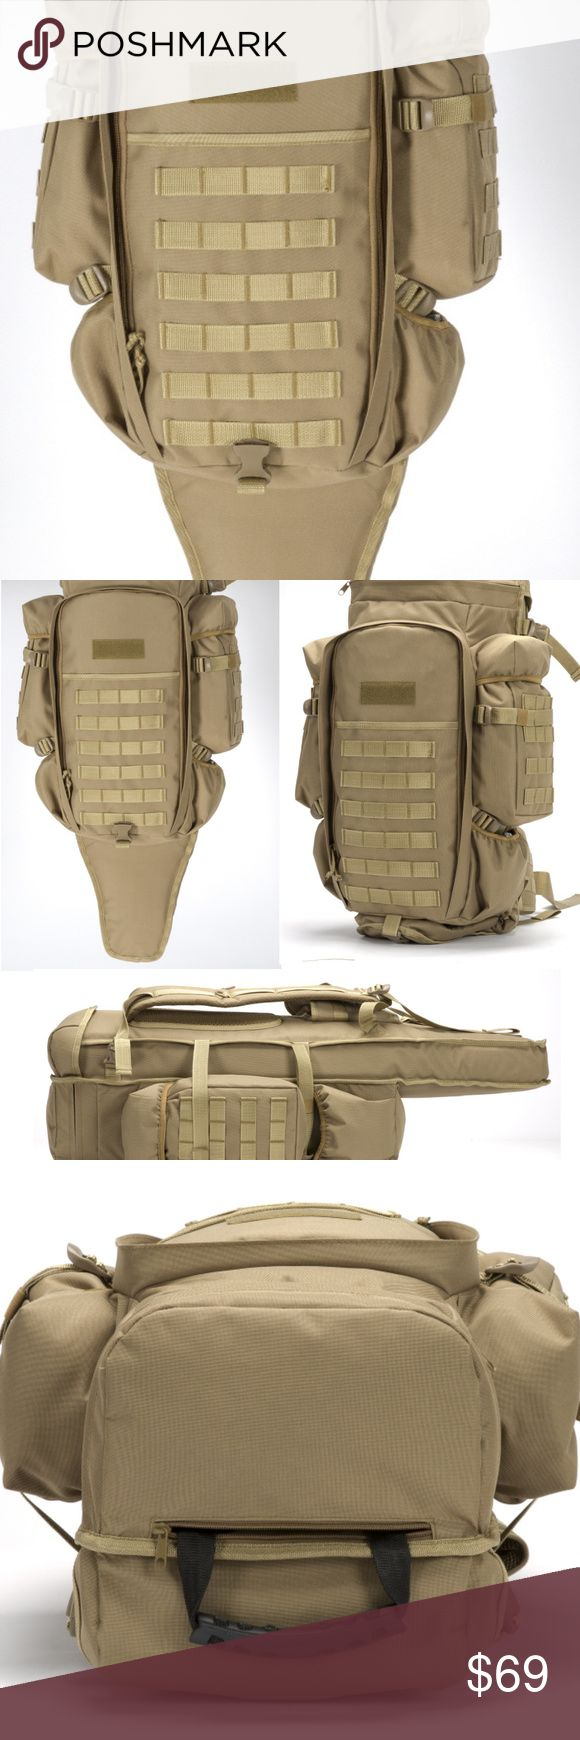 """Tan ACU Digital Tactical Padded Rifle Backpack Tactical Molle Dual Rifle Gun Carrying Case Bag Backpack  Extremely high quality water resistant 600 Denier fabric with heavy duty hardware and zippers Able to hold 2 rifles Molle webbing backpack Rifle pouch extends to 46"""" in length Adjustable top extension pad which is also removable Pouches & bottle pockets on both sides Durable hand/carry strap Comfortable shoulder straps fitted with D ring, waist  and sternum belts Padded back for comfort…"""